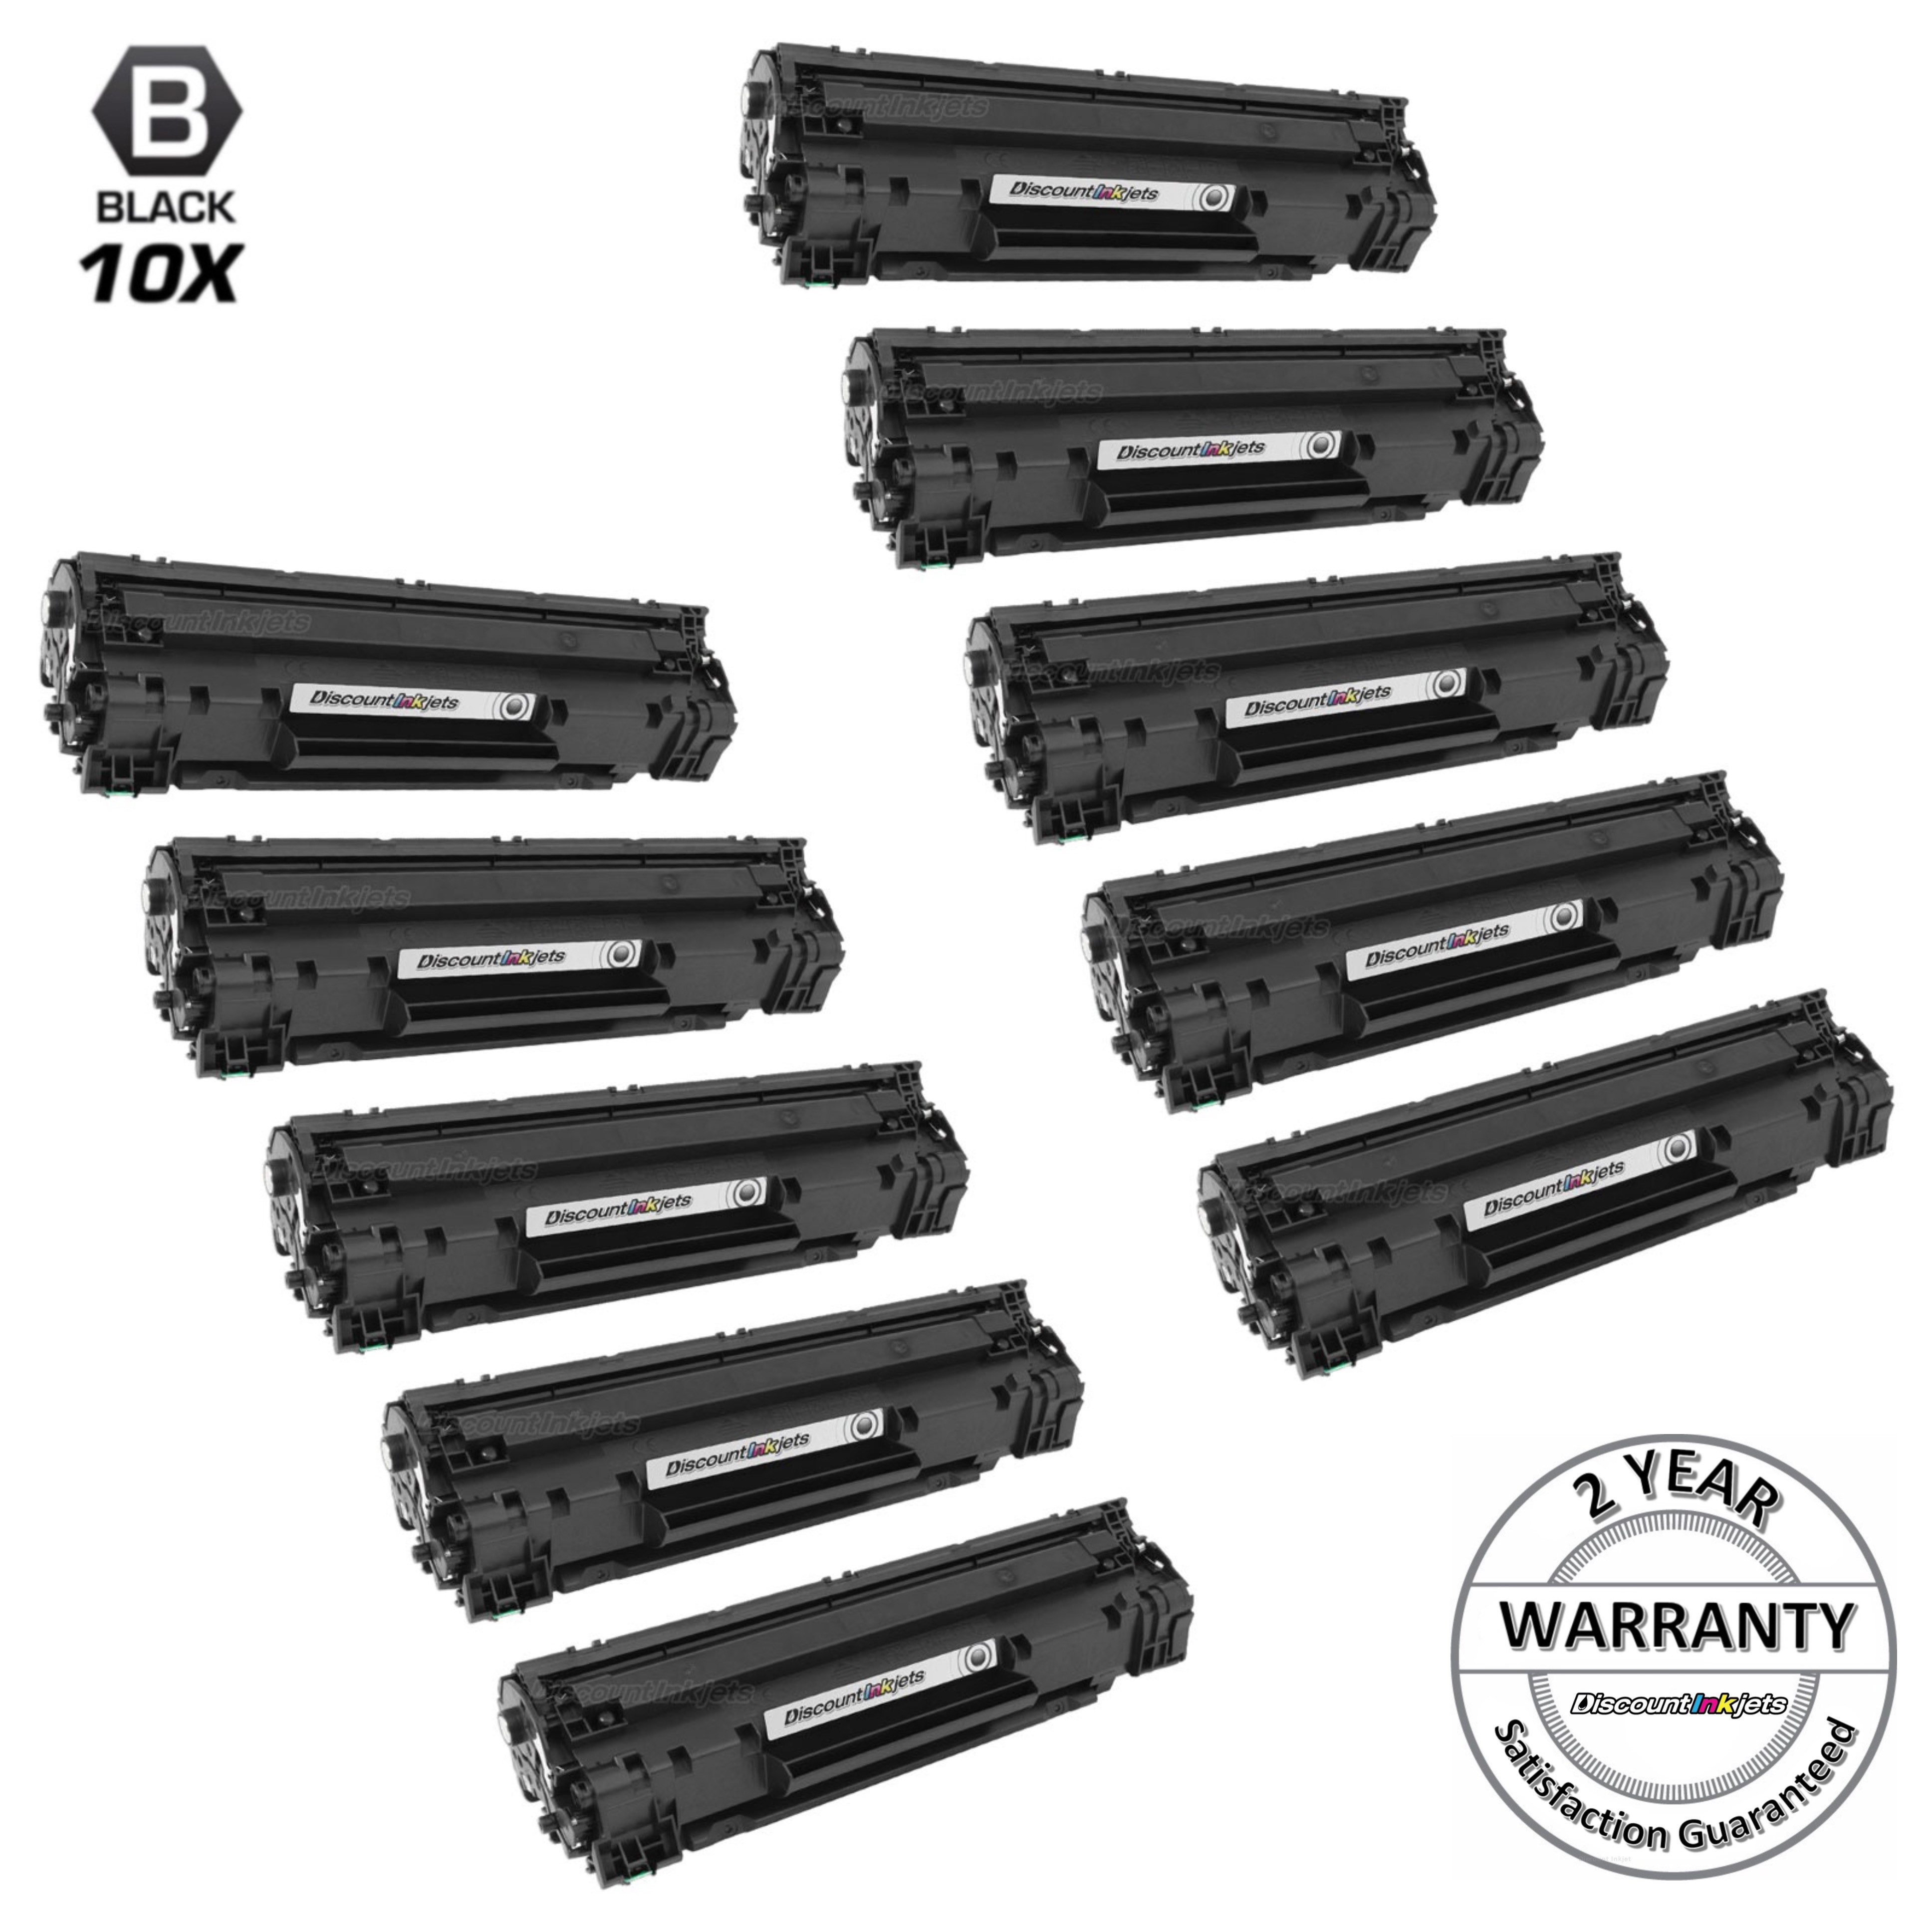 2 CF283A 83A Black Laser Toner Cartridge for HP M201dw M201n M125a M125nw